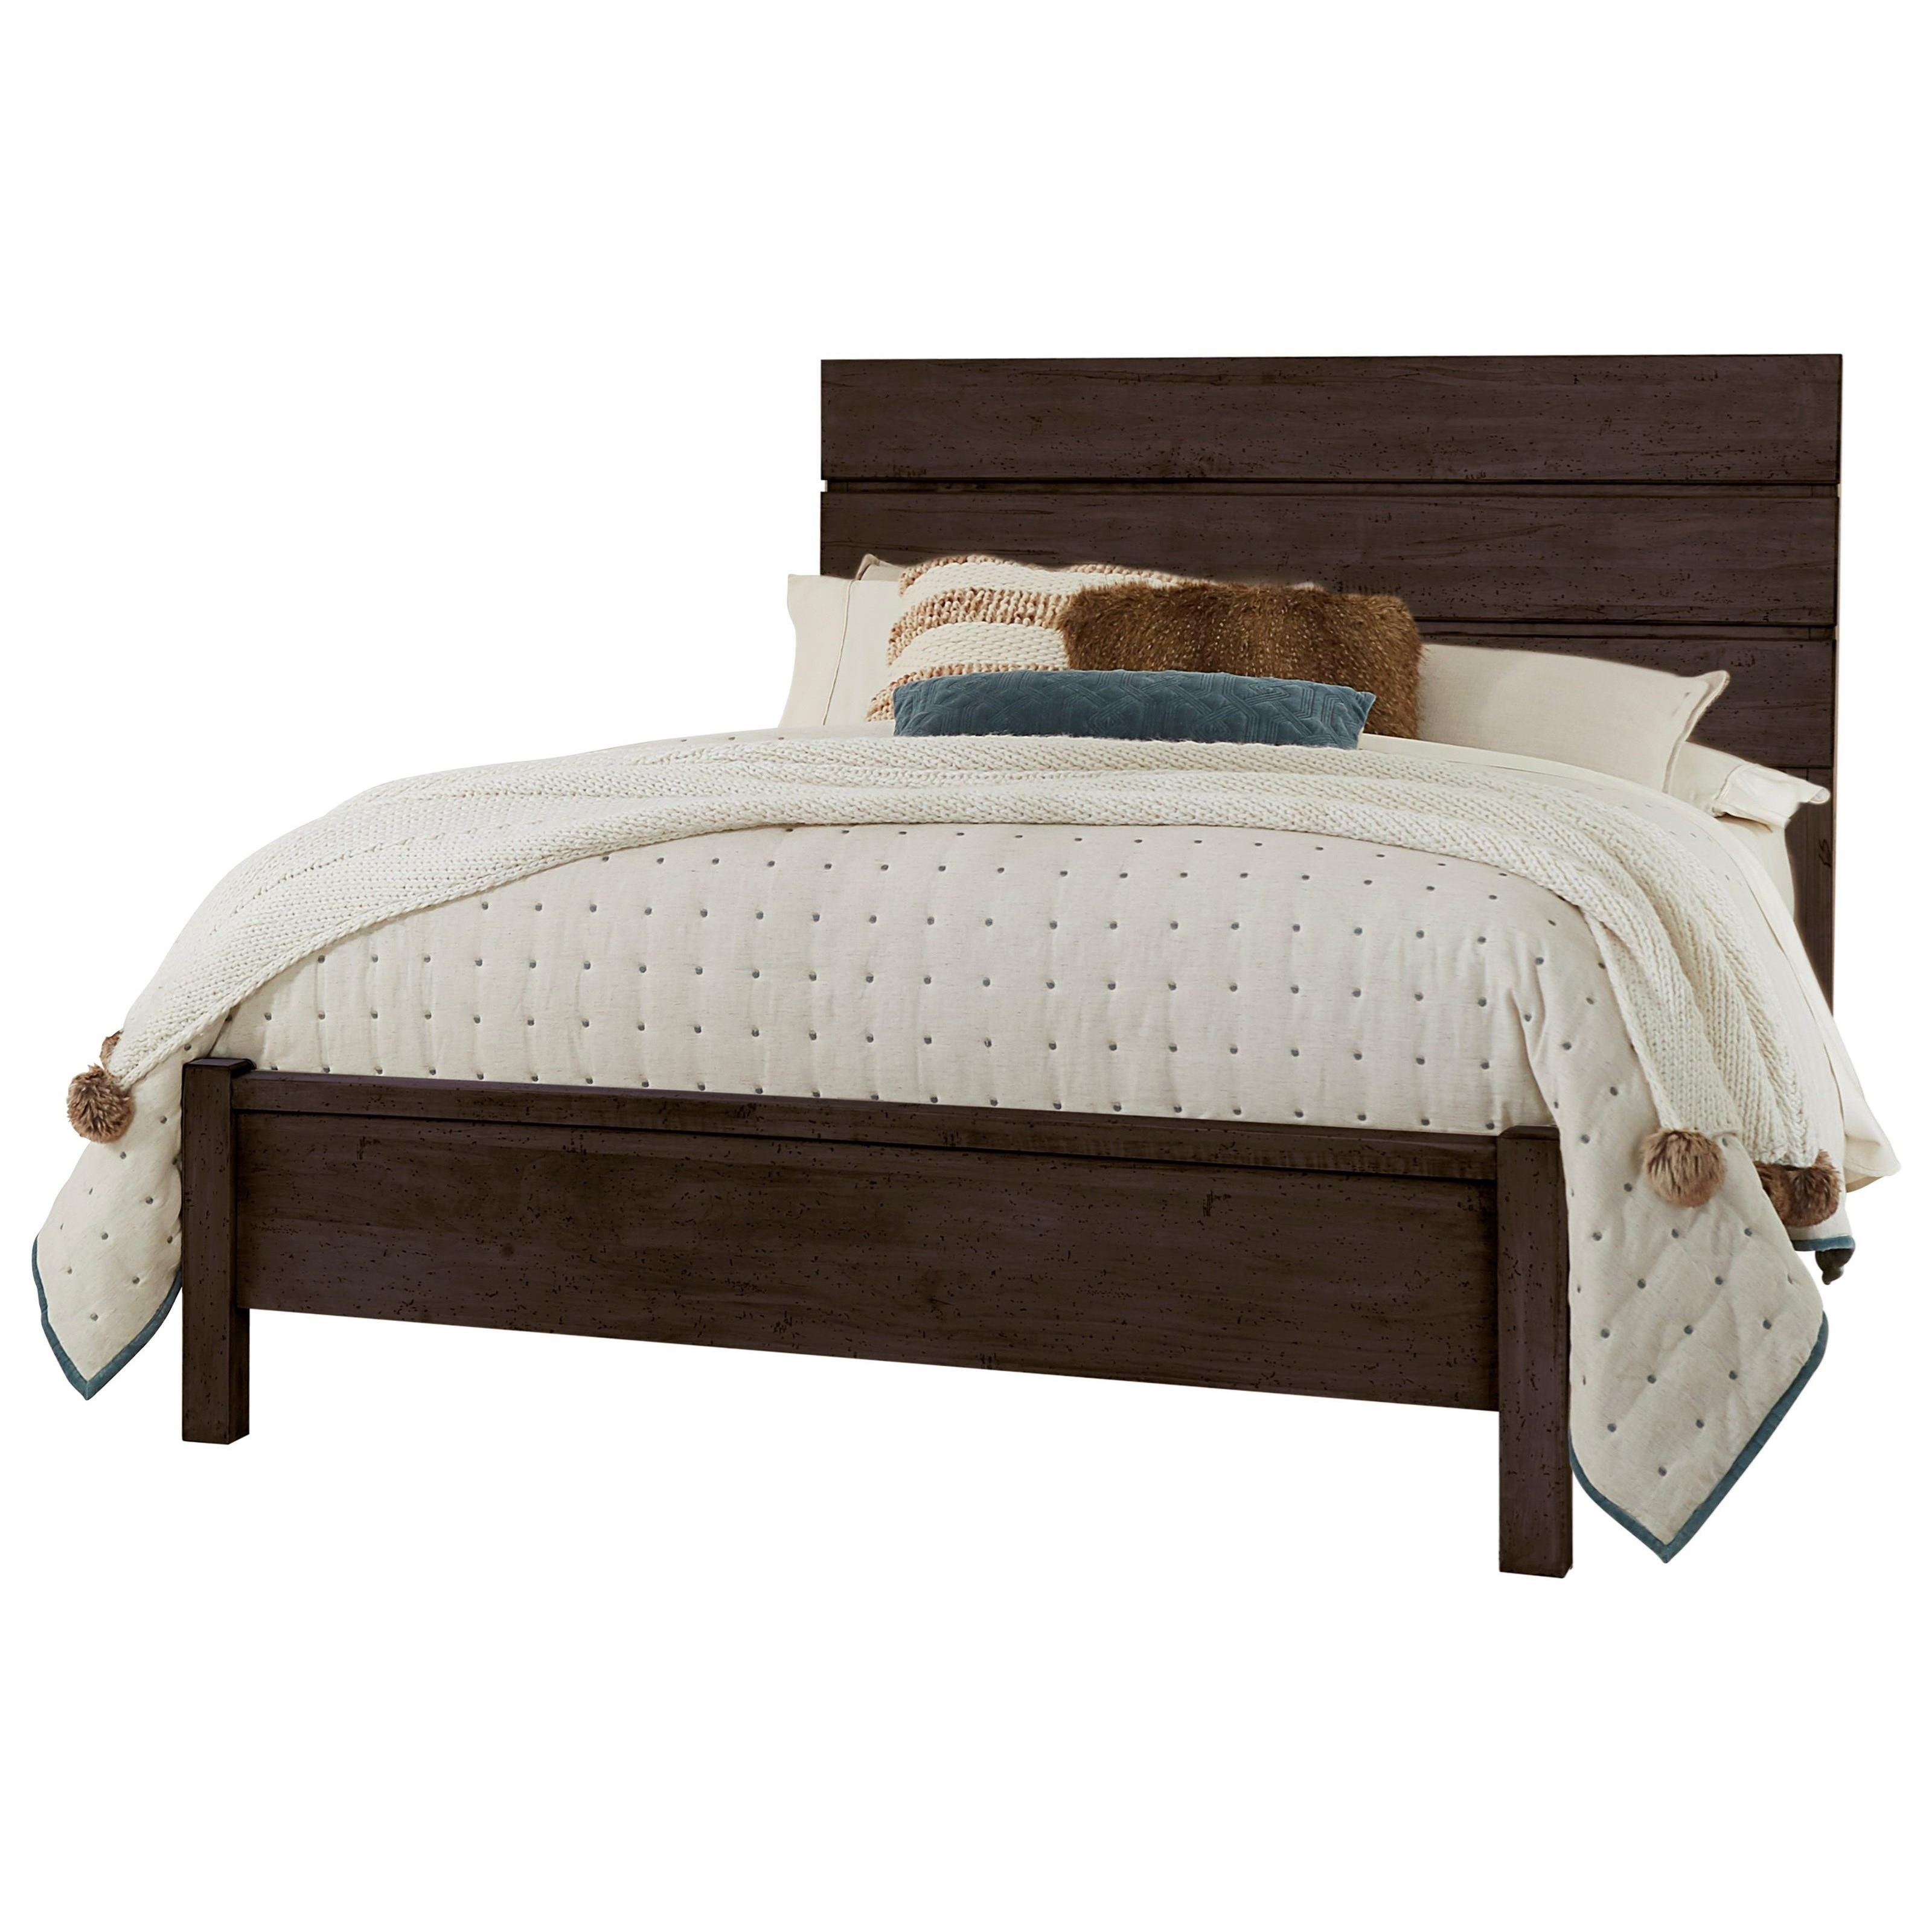 Touche Queen Platform Bed by Centennial Solids at Rooms and Rest